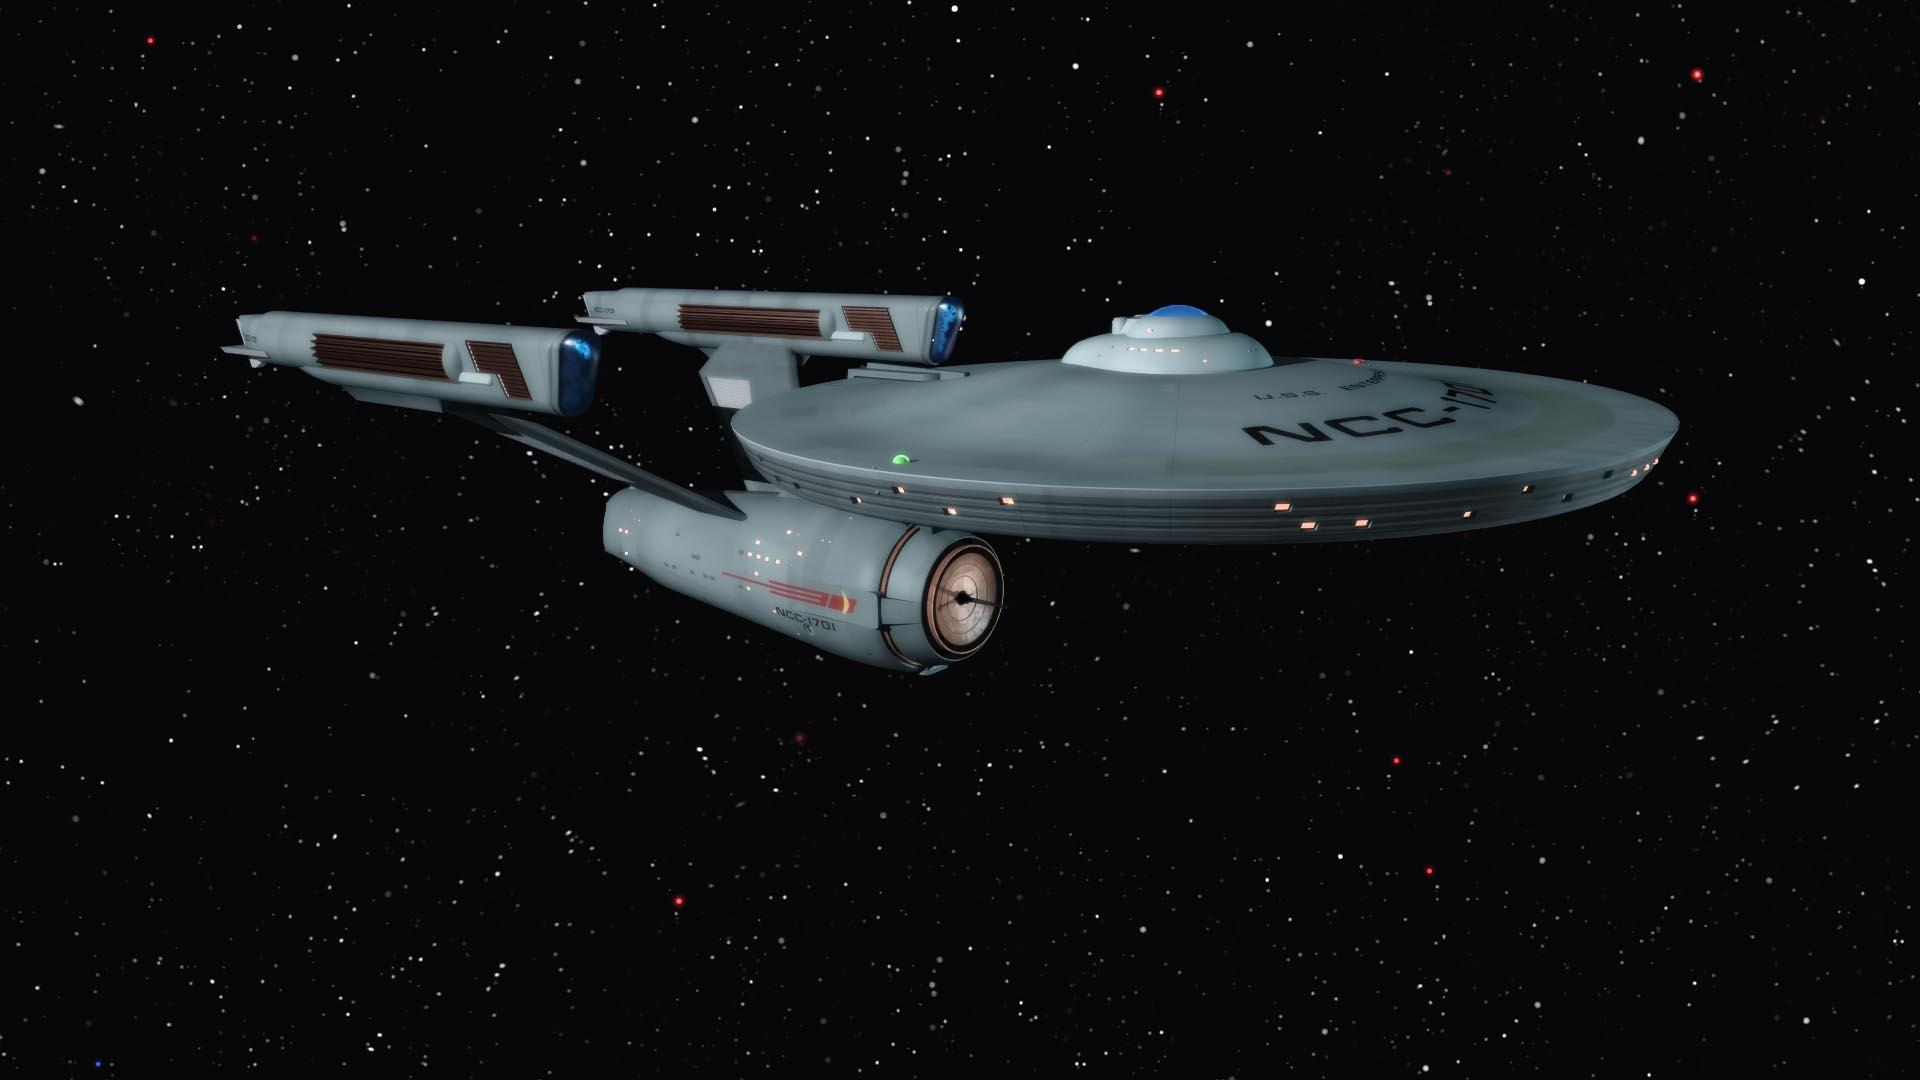 star trek uss enterprise 1080x1920 Wallpaper HDTV Desktop Wallpaper 1920x1080